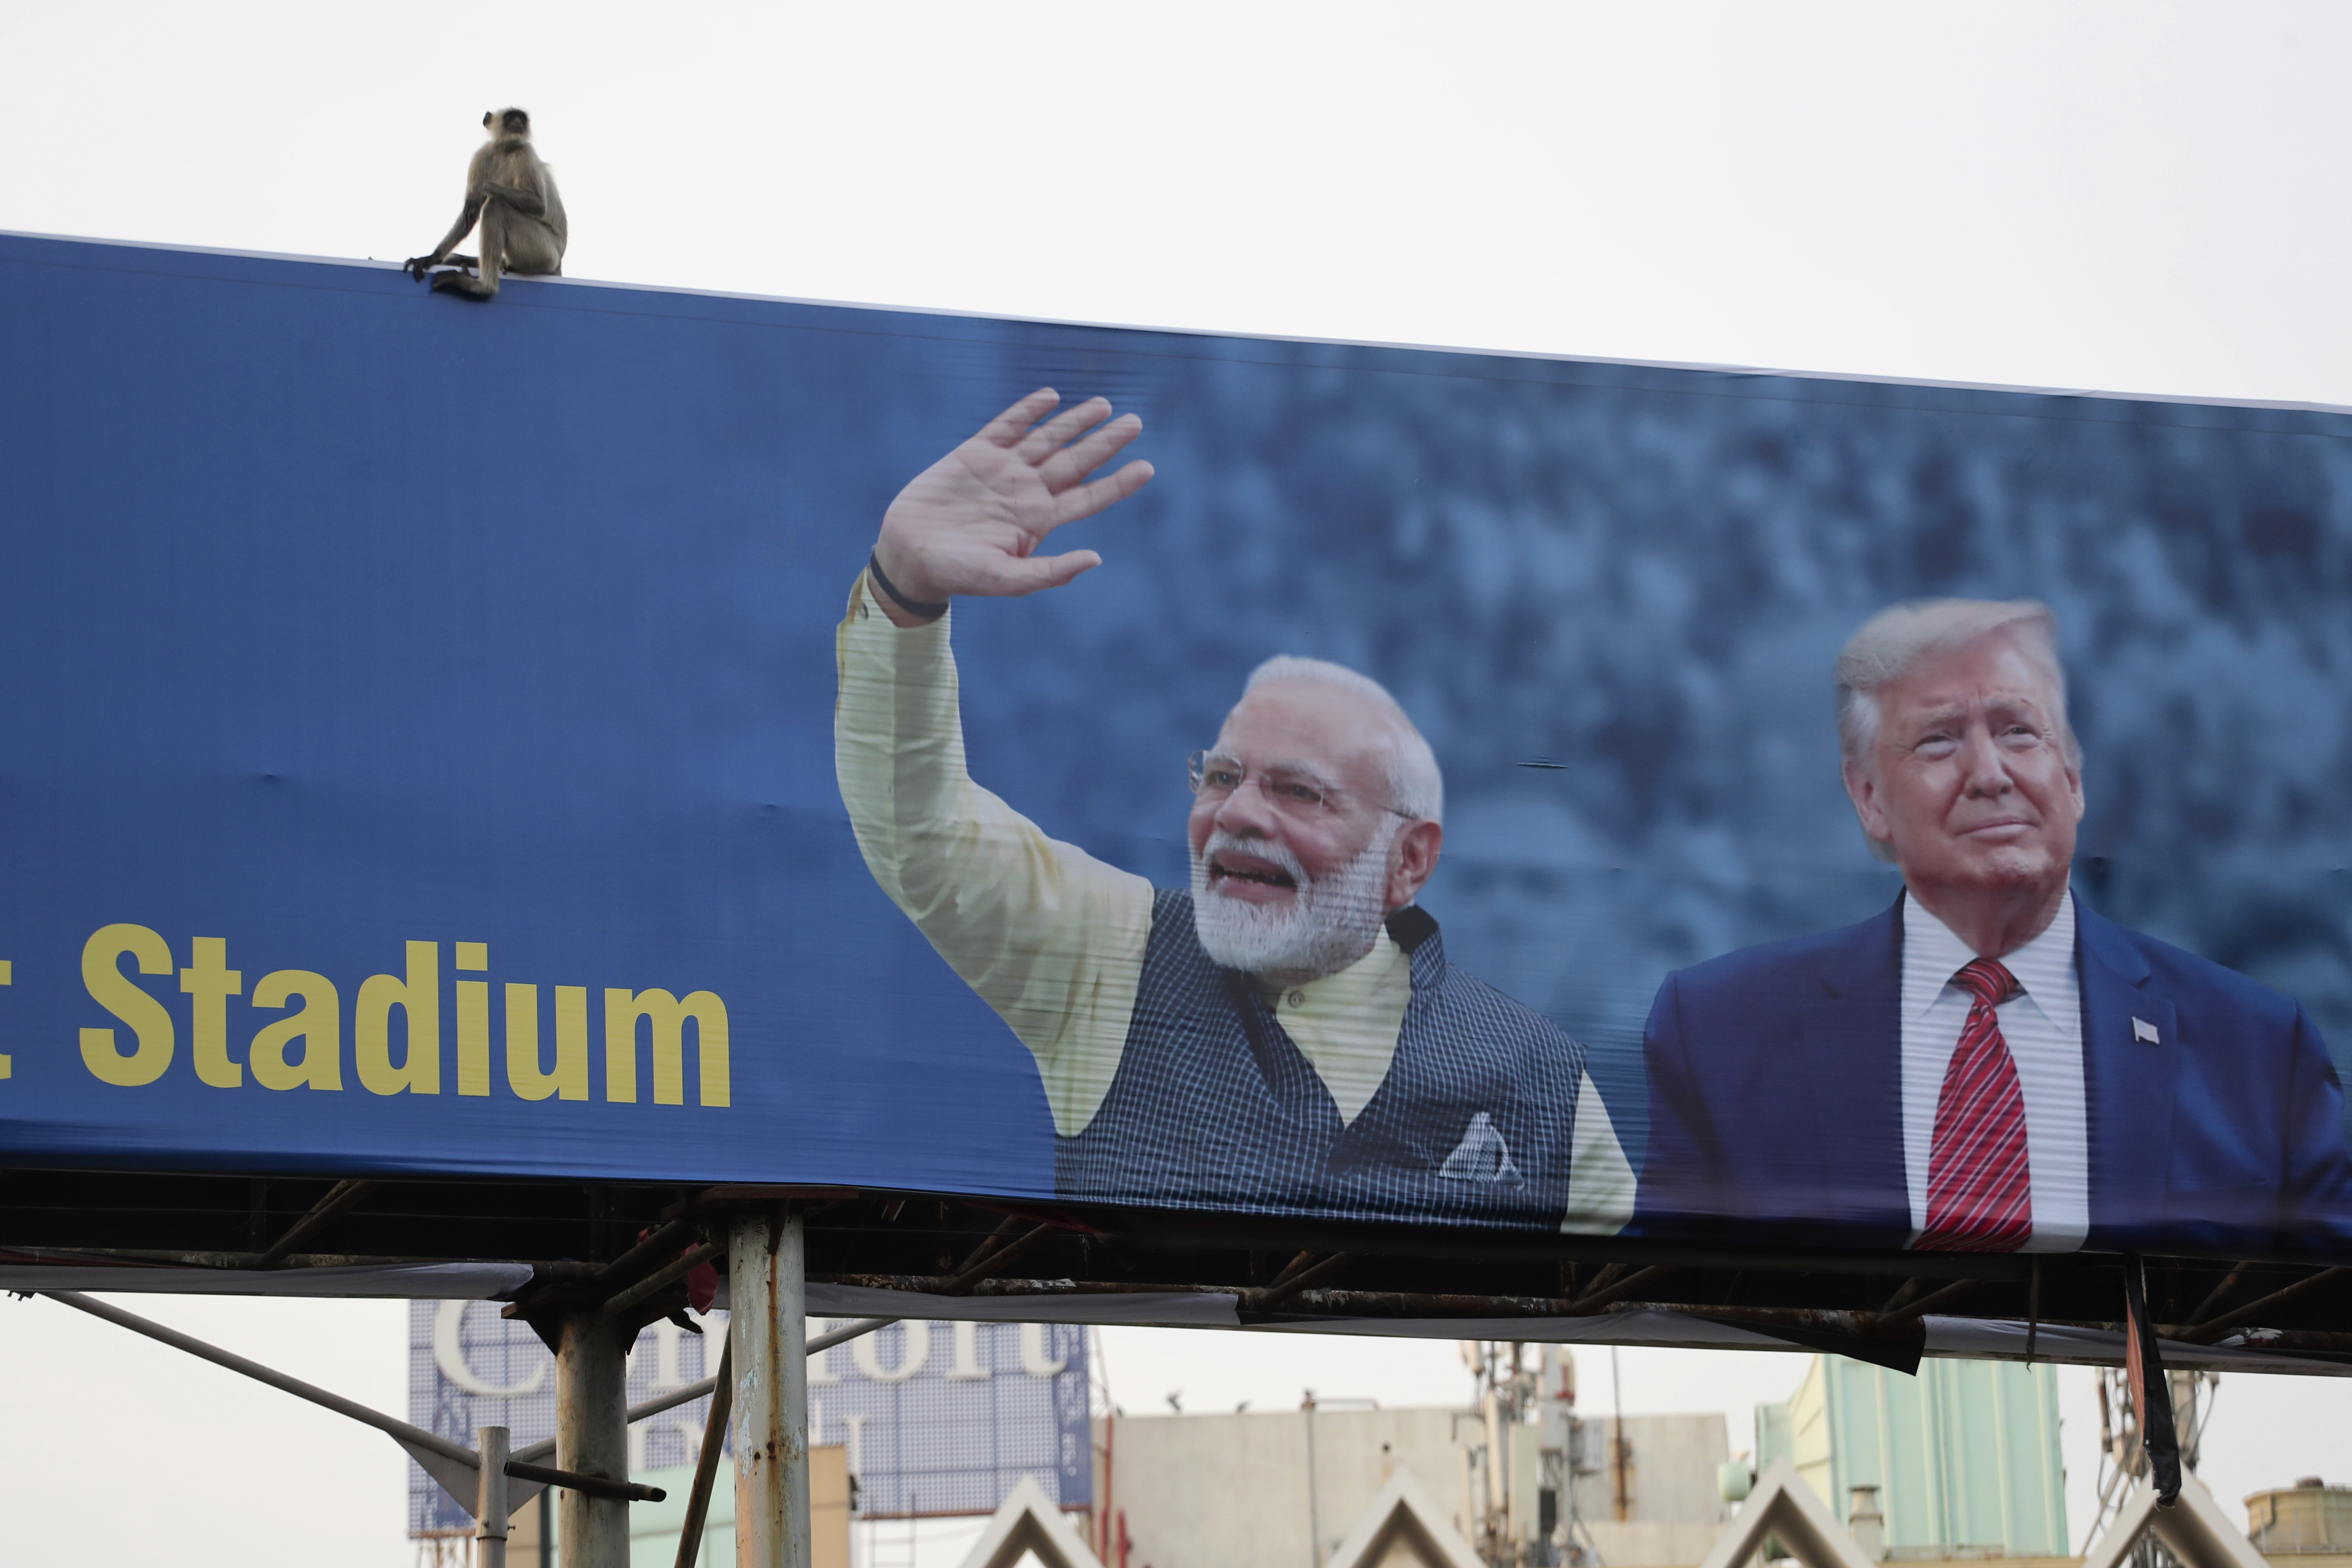 A monkey sits on a hoarding welcoming U.S. President Donald Trump ahead of his visit to Ahmedabad, India on  Feb. 19, 2020.